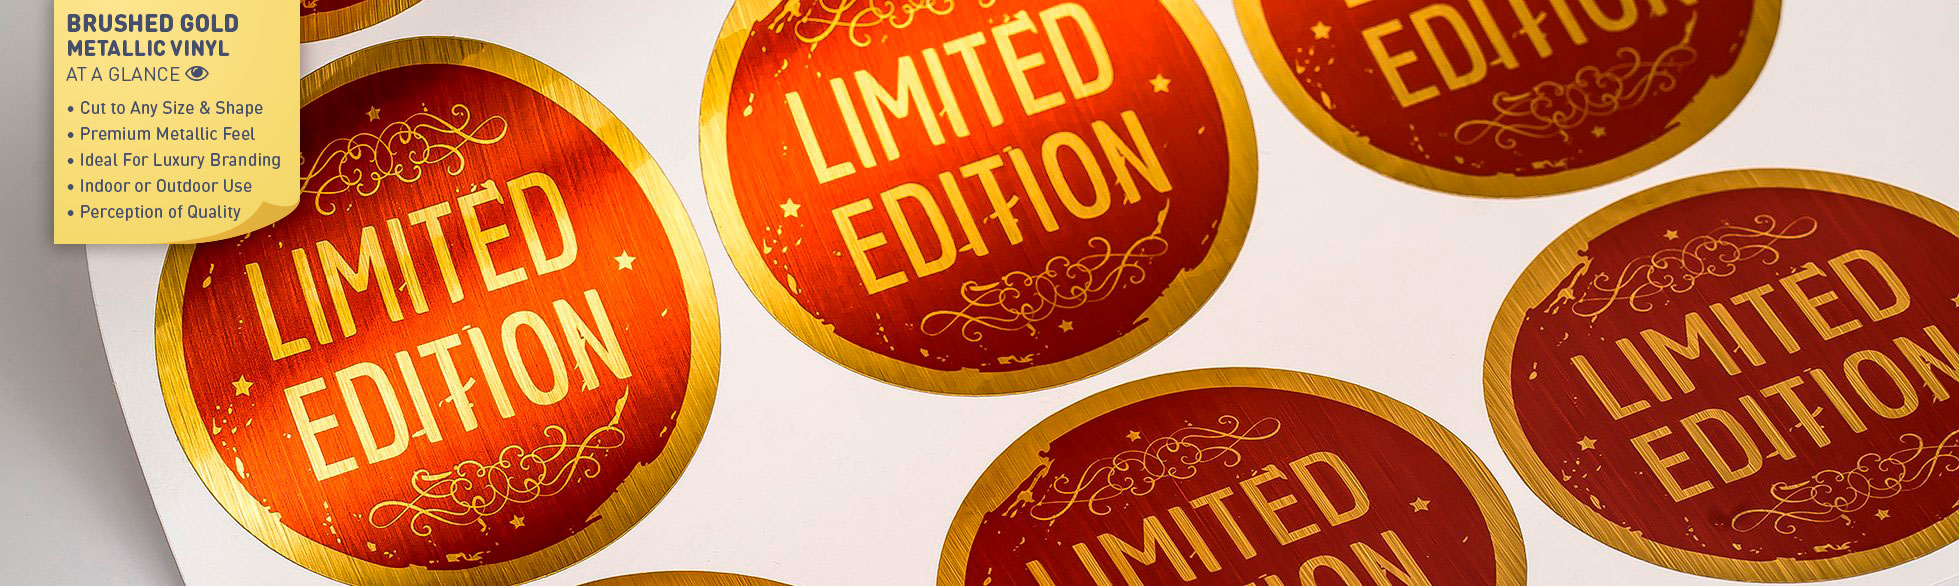 Brushed Finished Gold Metallic Labels